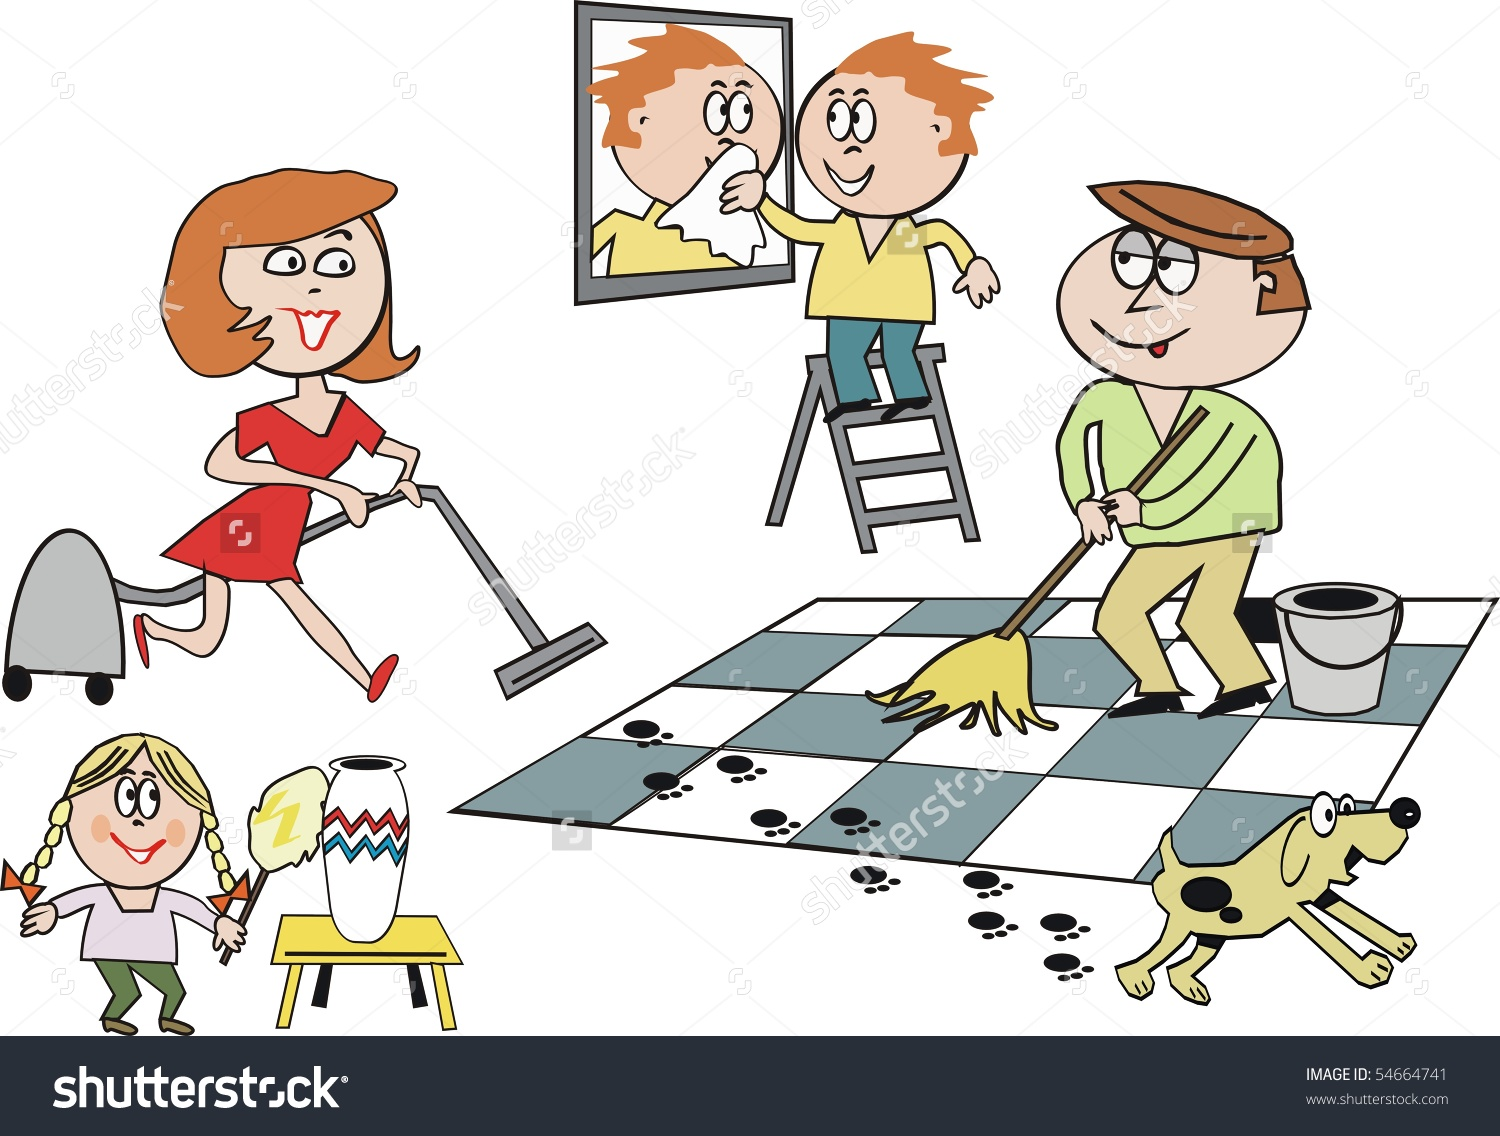 children helping parents in cleaning house clipart 4 » clipart station